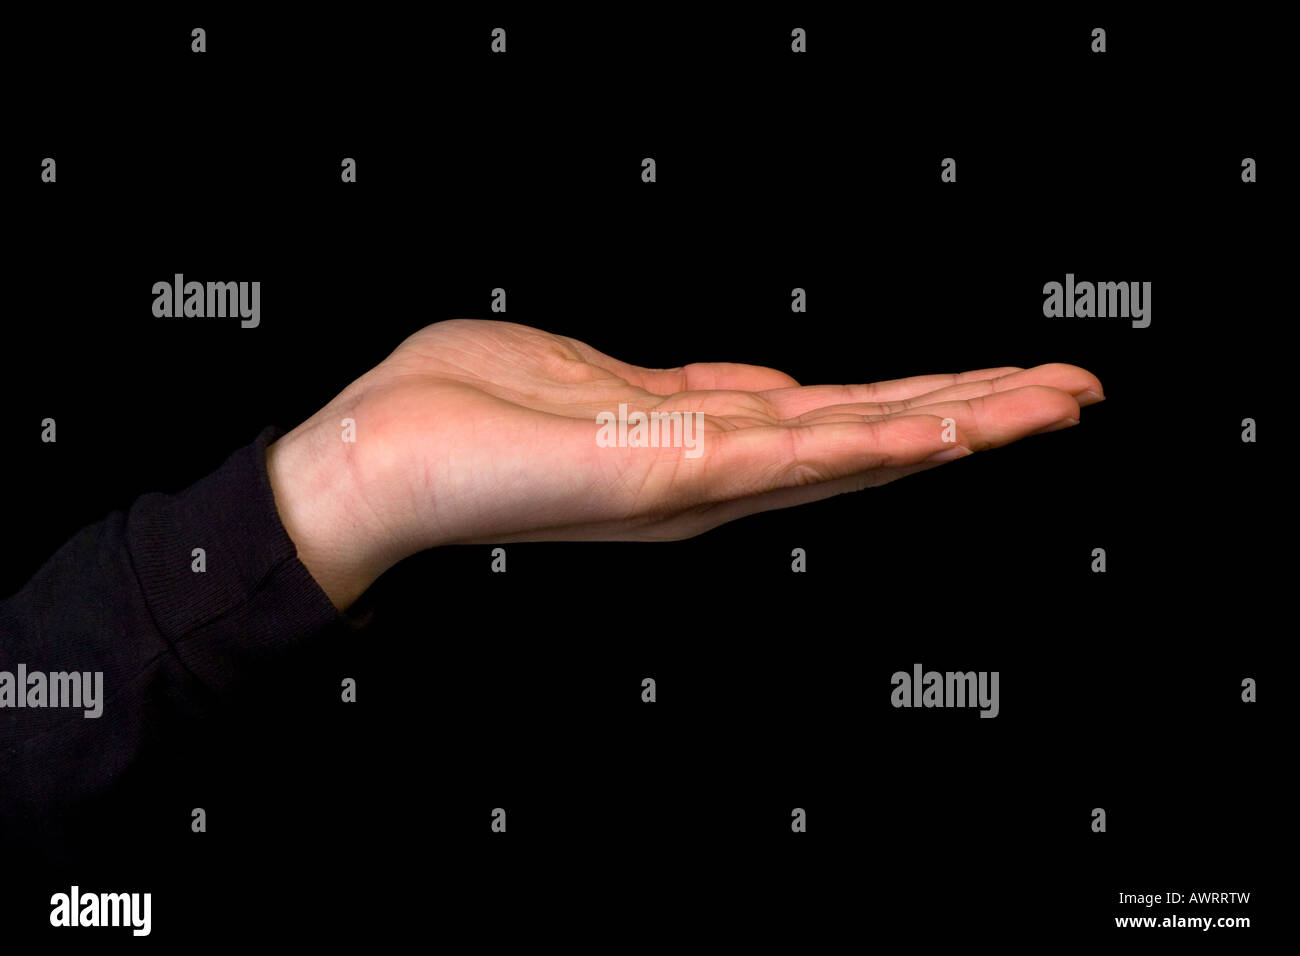 left hand palm up - Stock Image